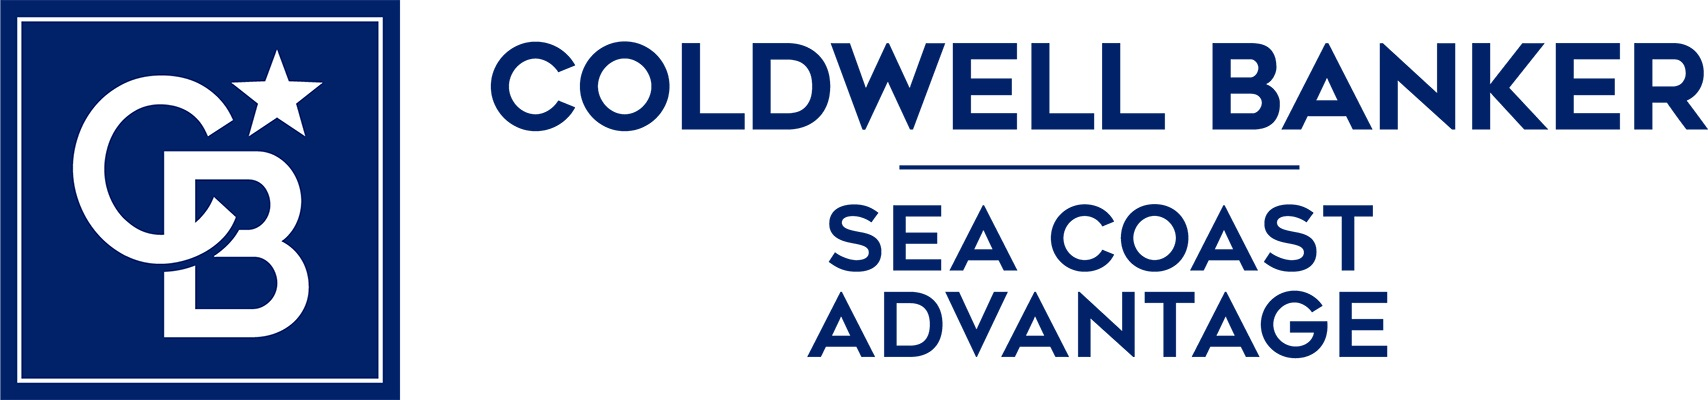 April Annas - Coldwell Banker Sea Coast Advantage Realty